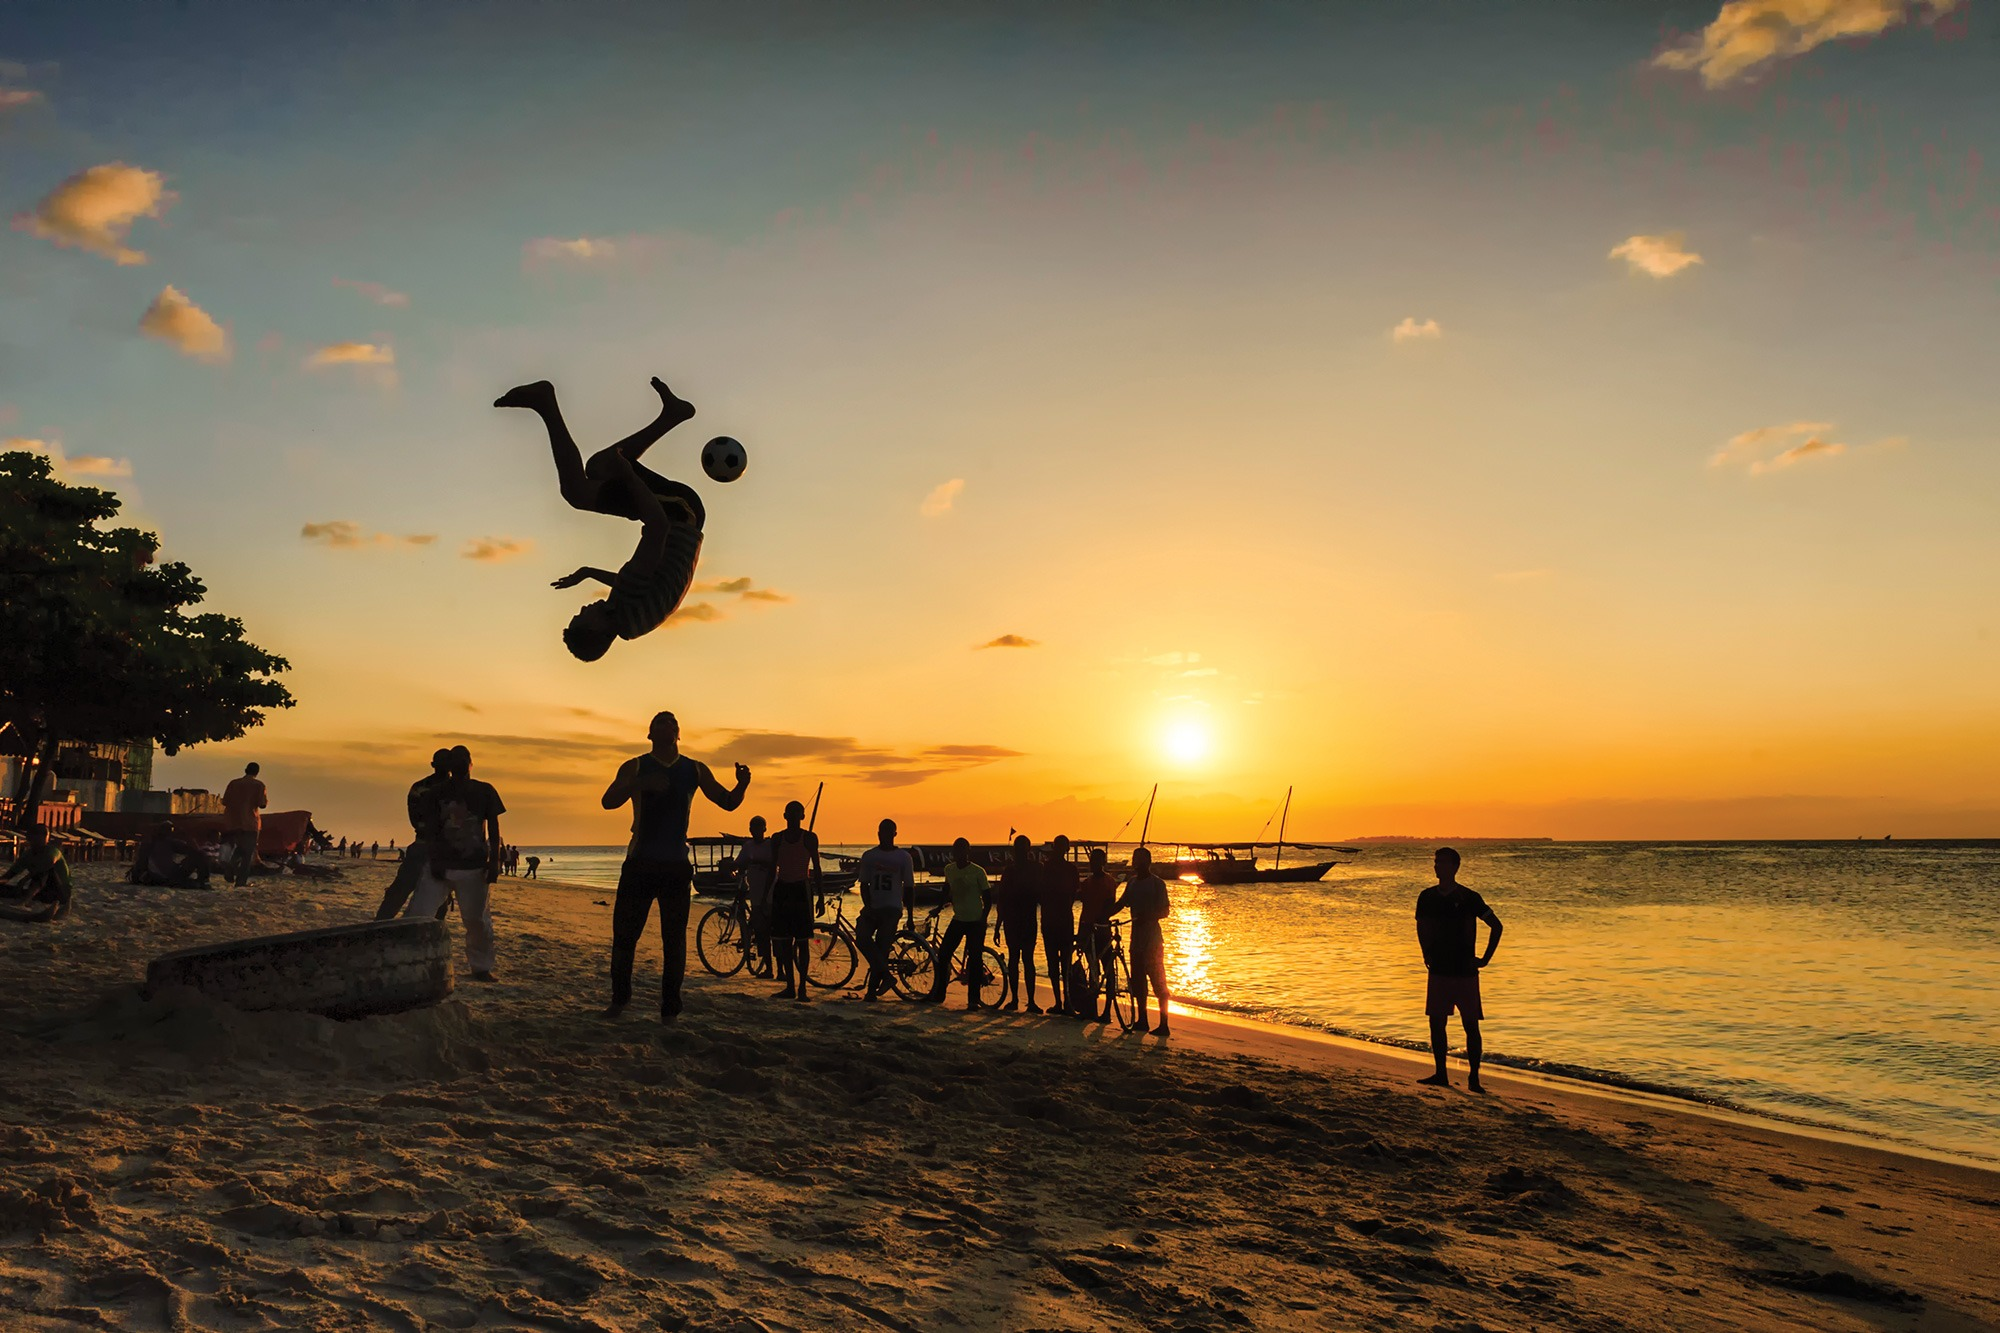 A game of jump and kick on Stone Town beach